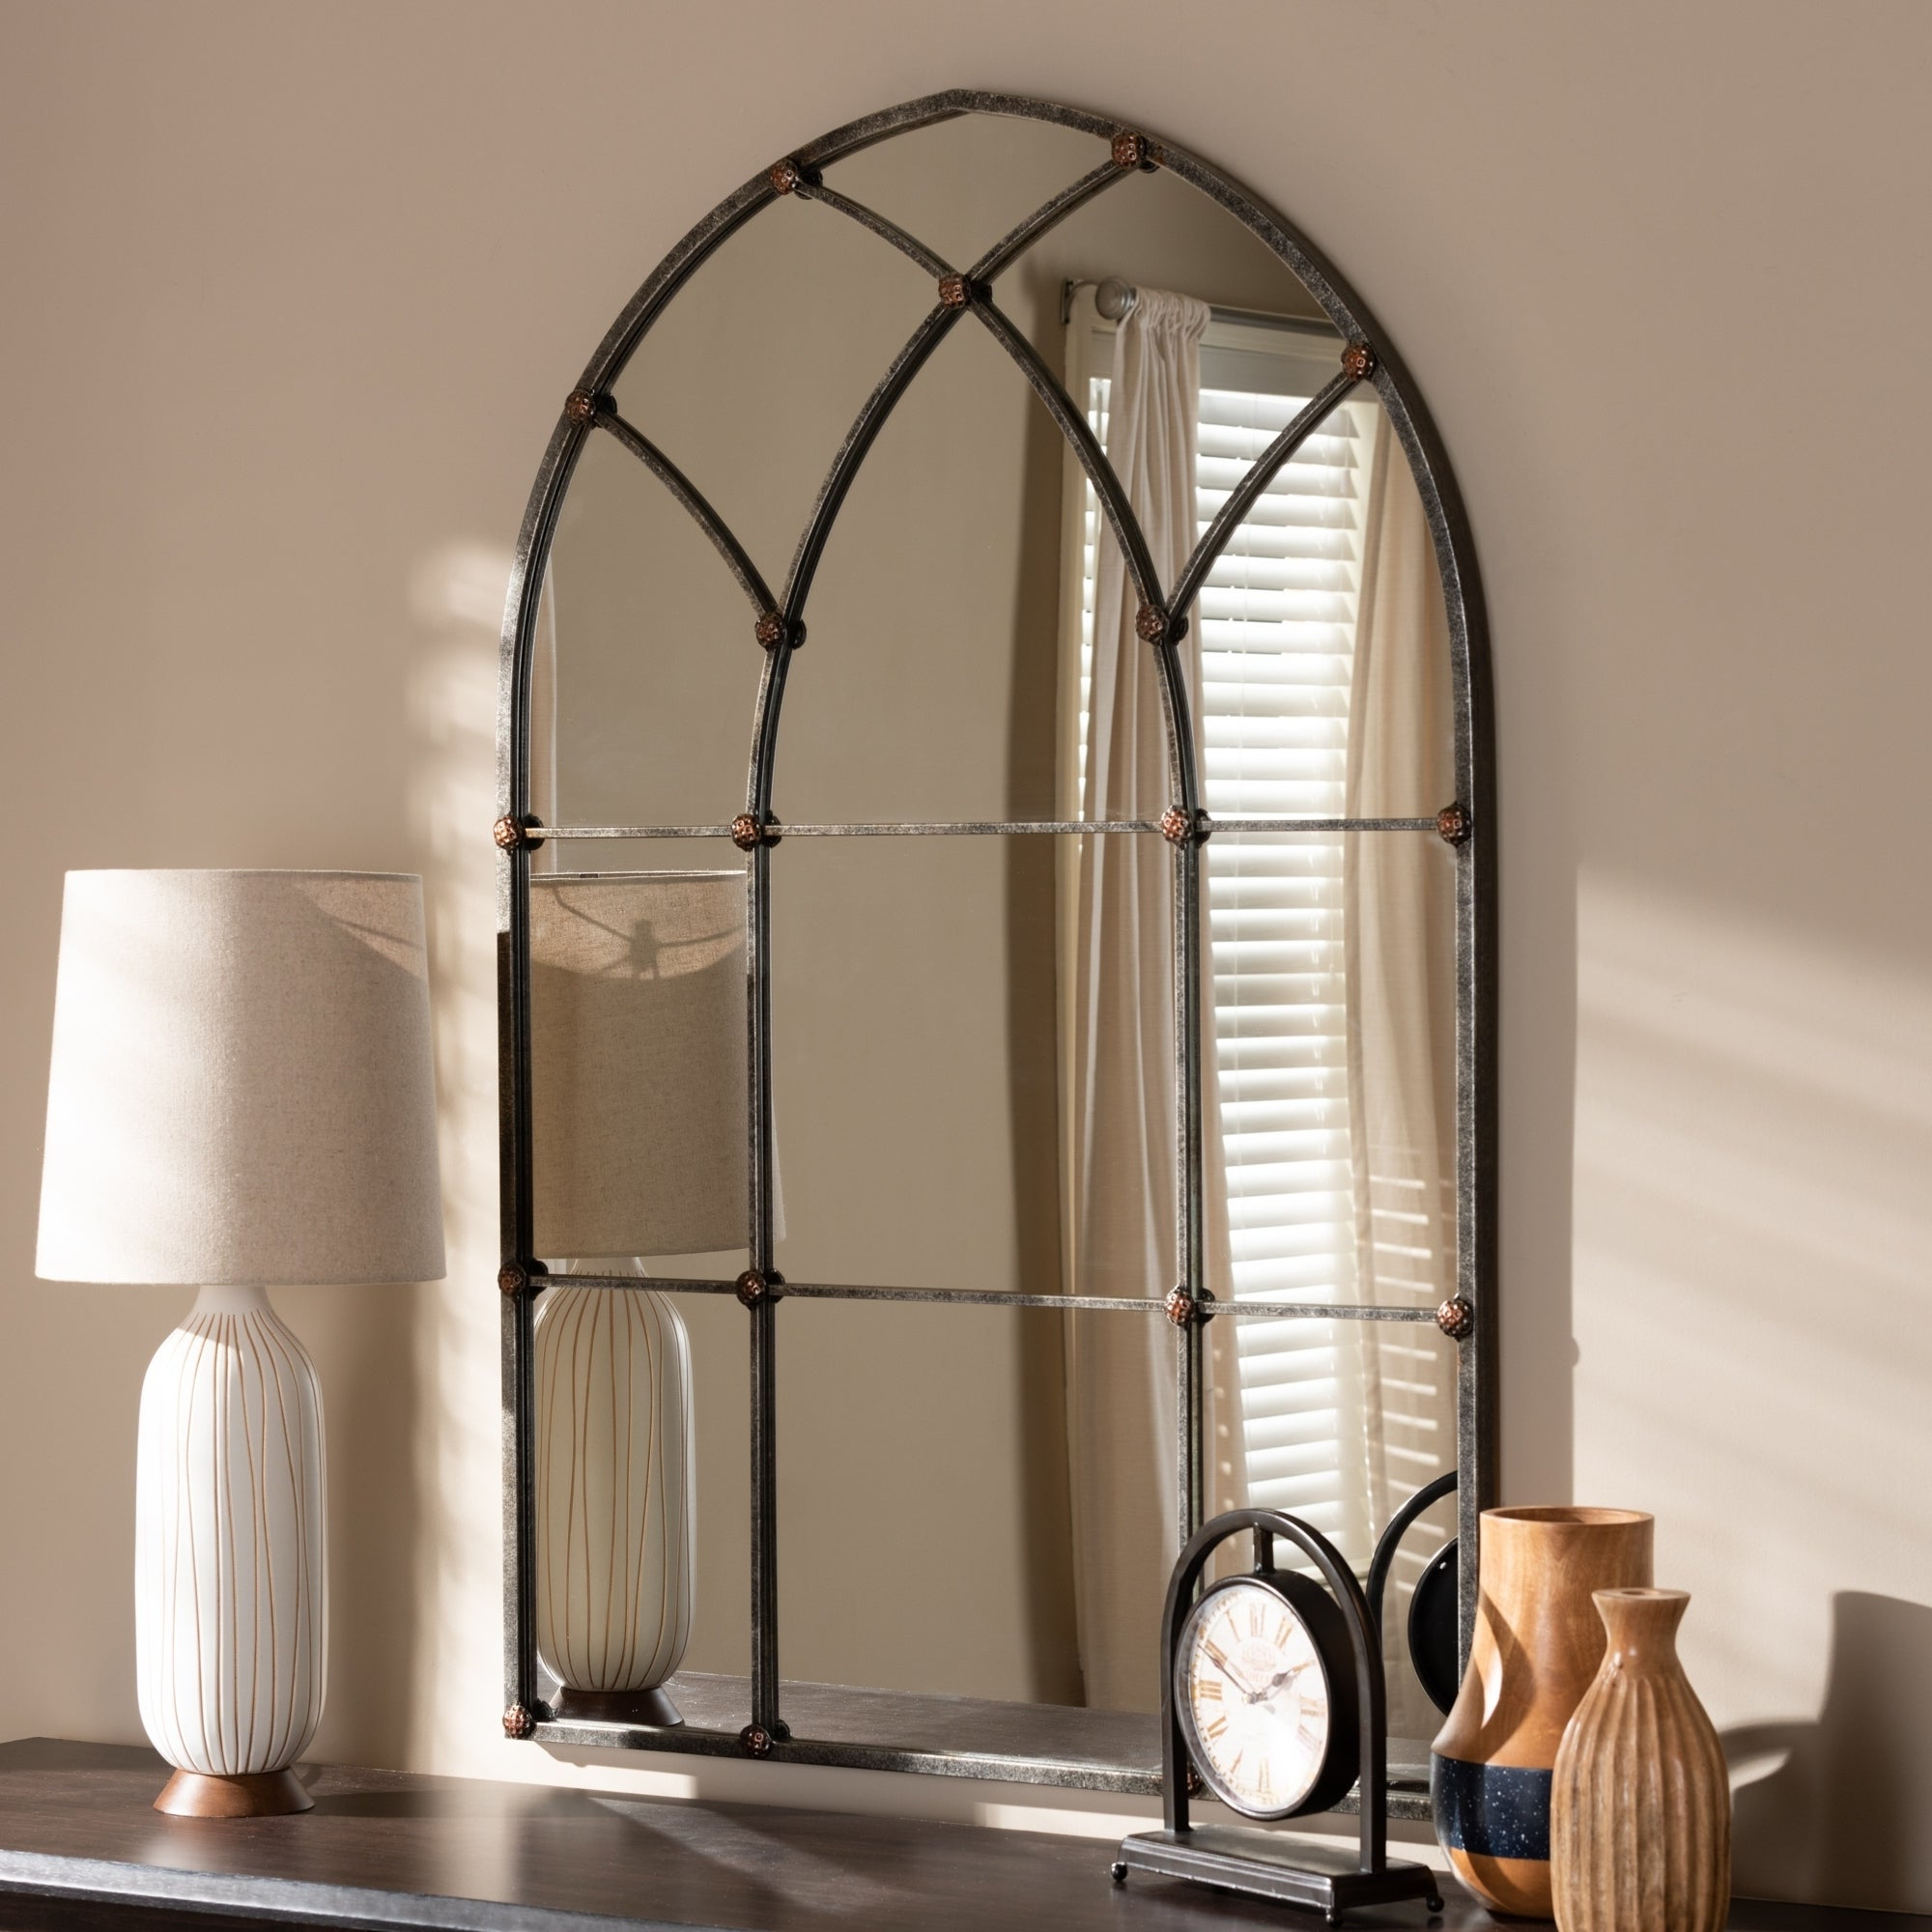 Latest Vintage Antique Silver Arched Window Wall Mirrorbaxton Studio – Antique  Silver With Arch Vertical Wall Mirrors (Gallery 20 of 20)